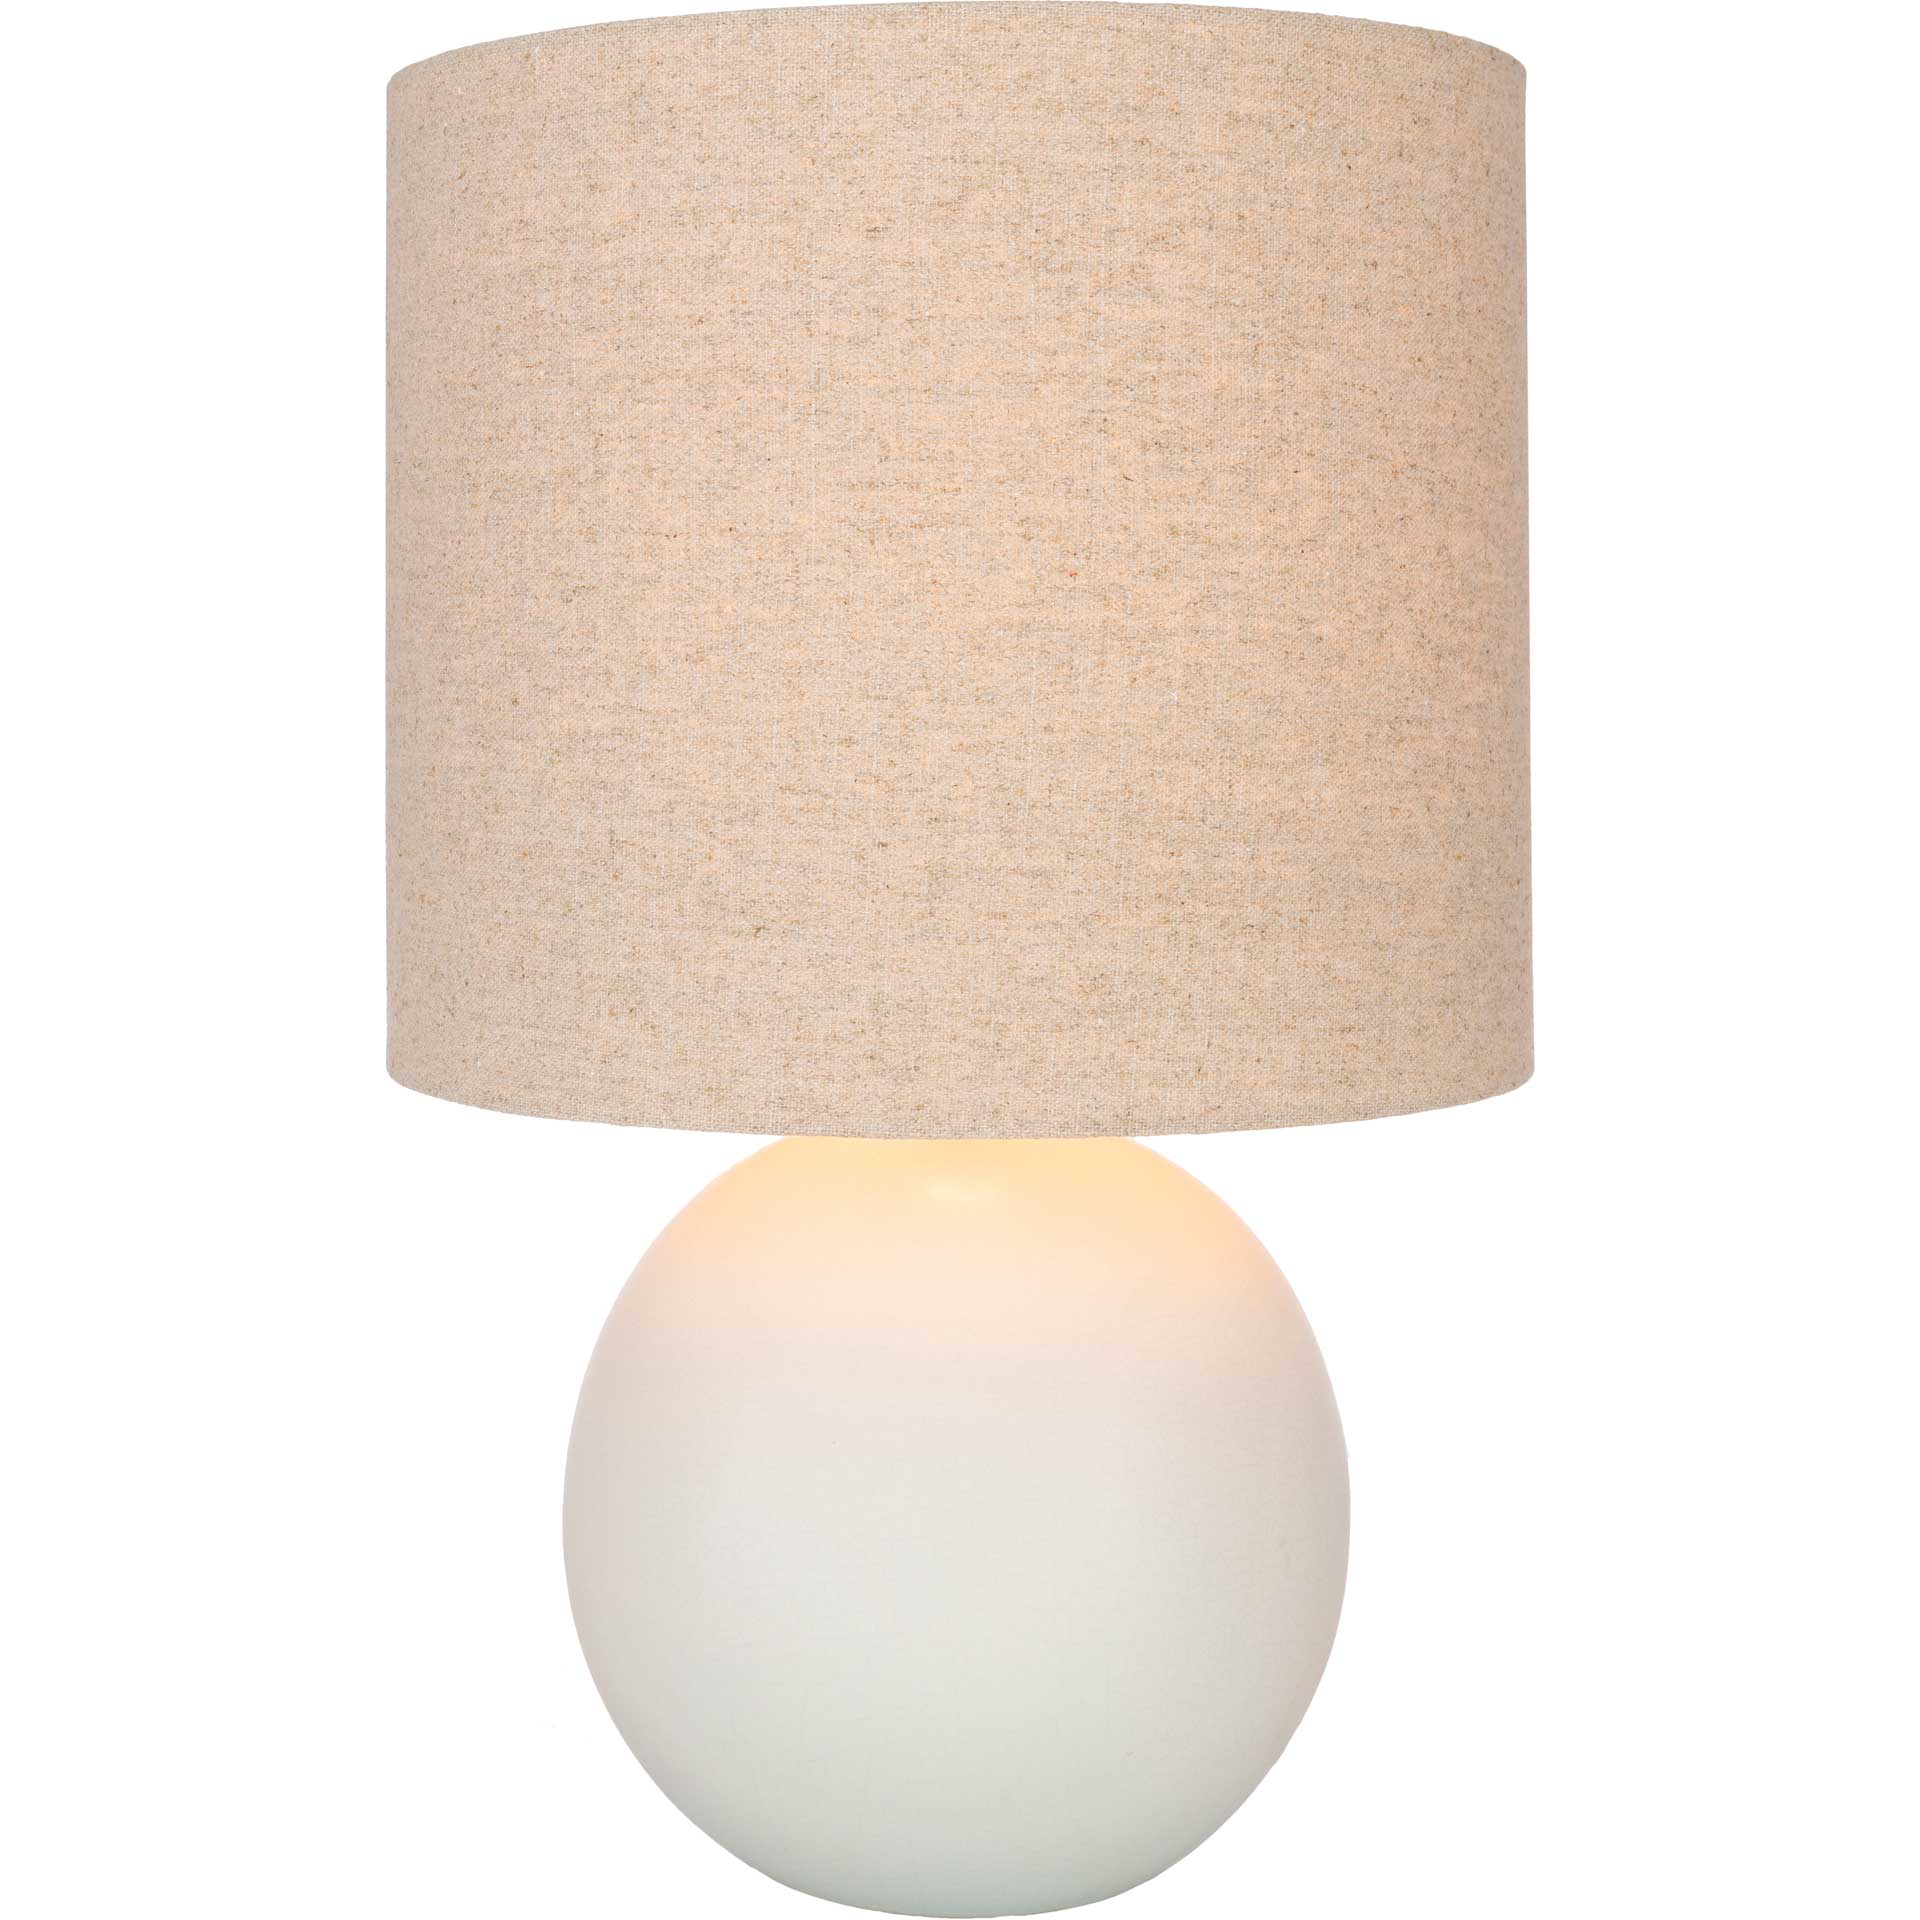 Vicenzia Table Lamp Ivory/Light Gray/Natural